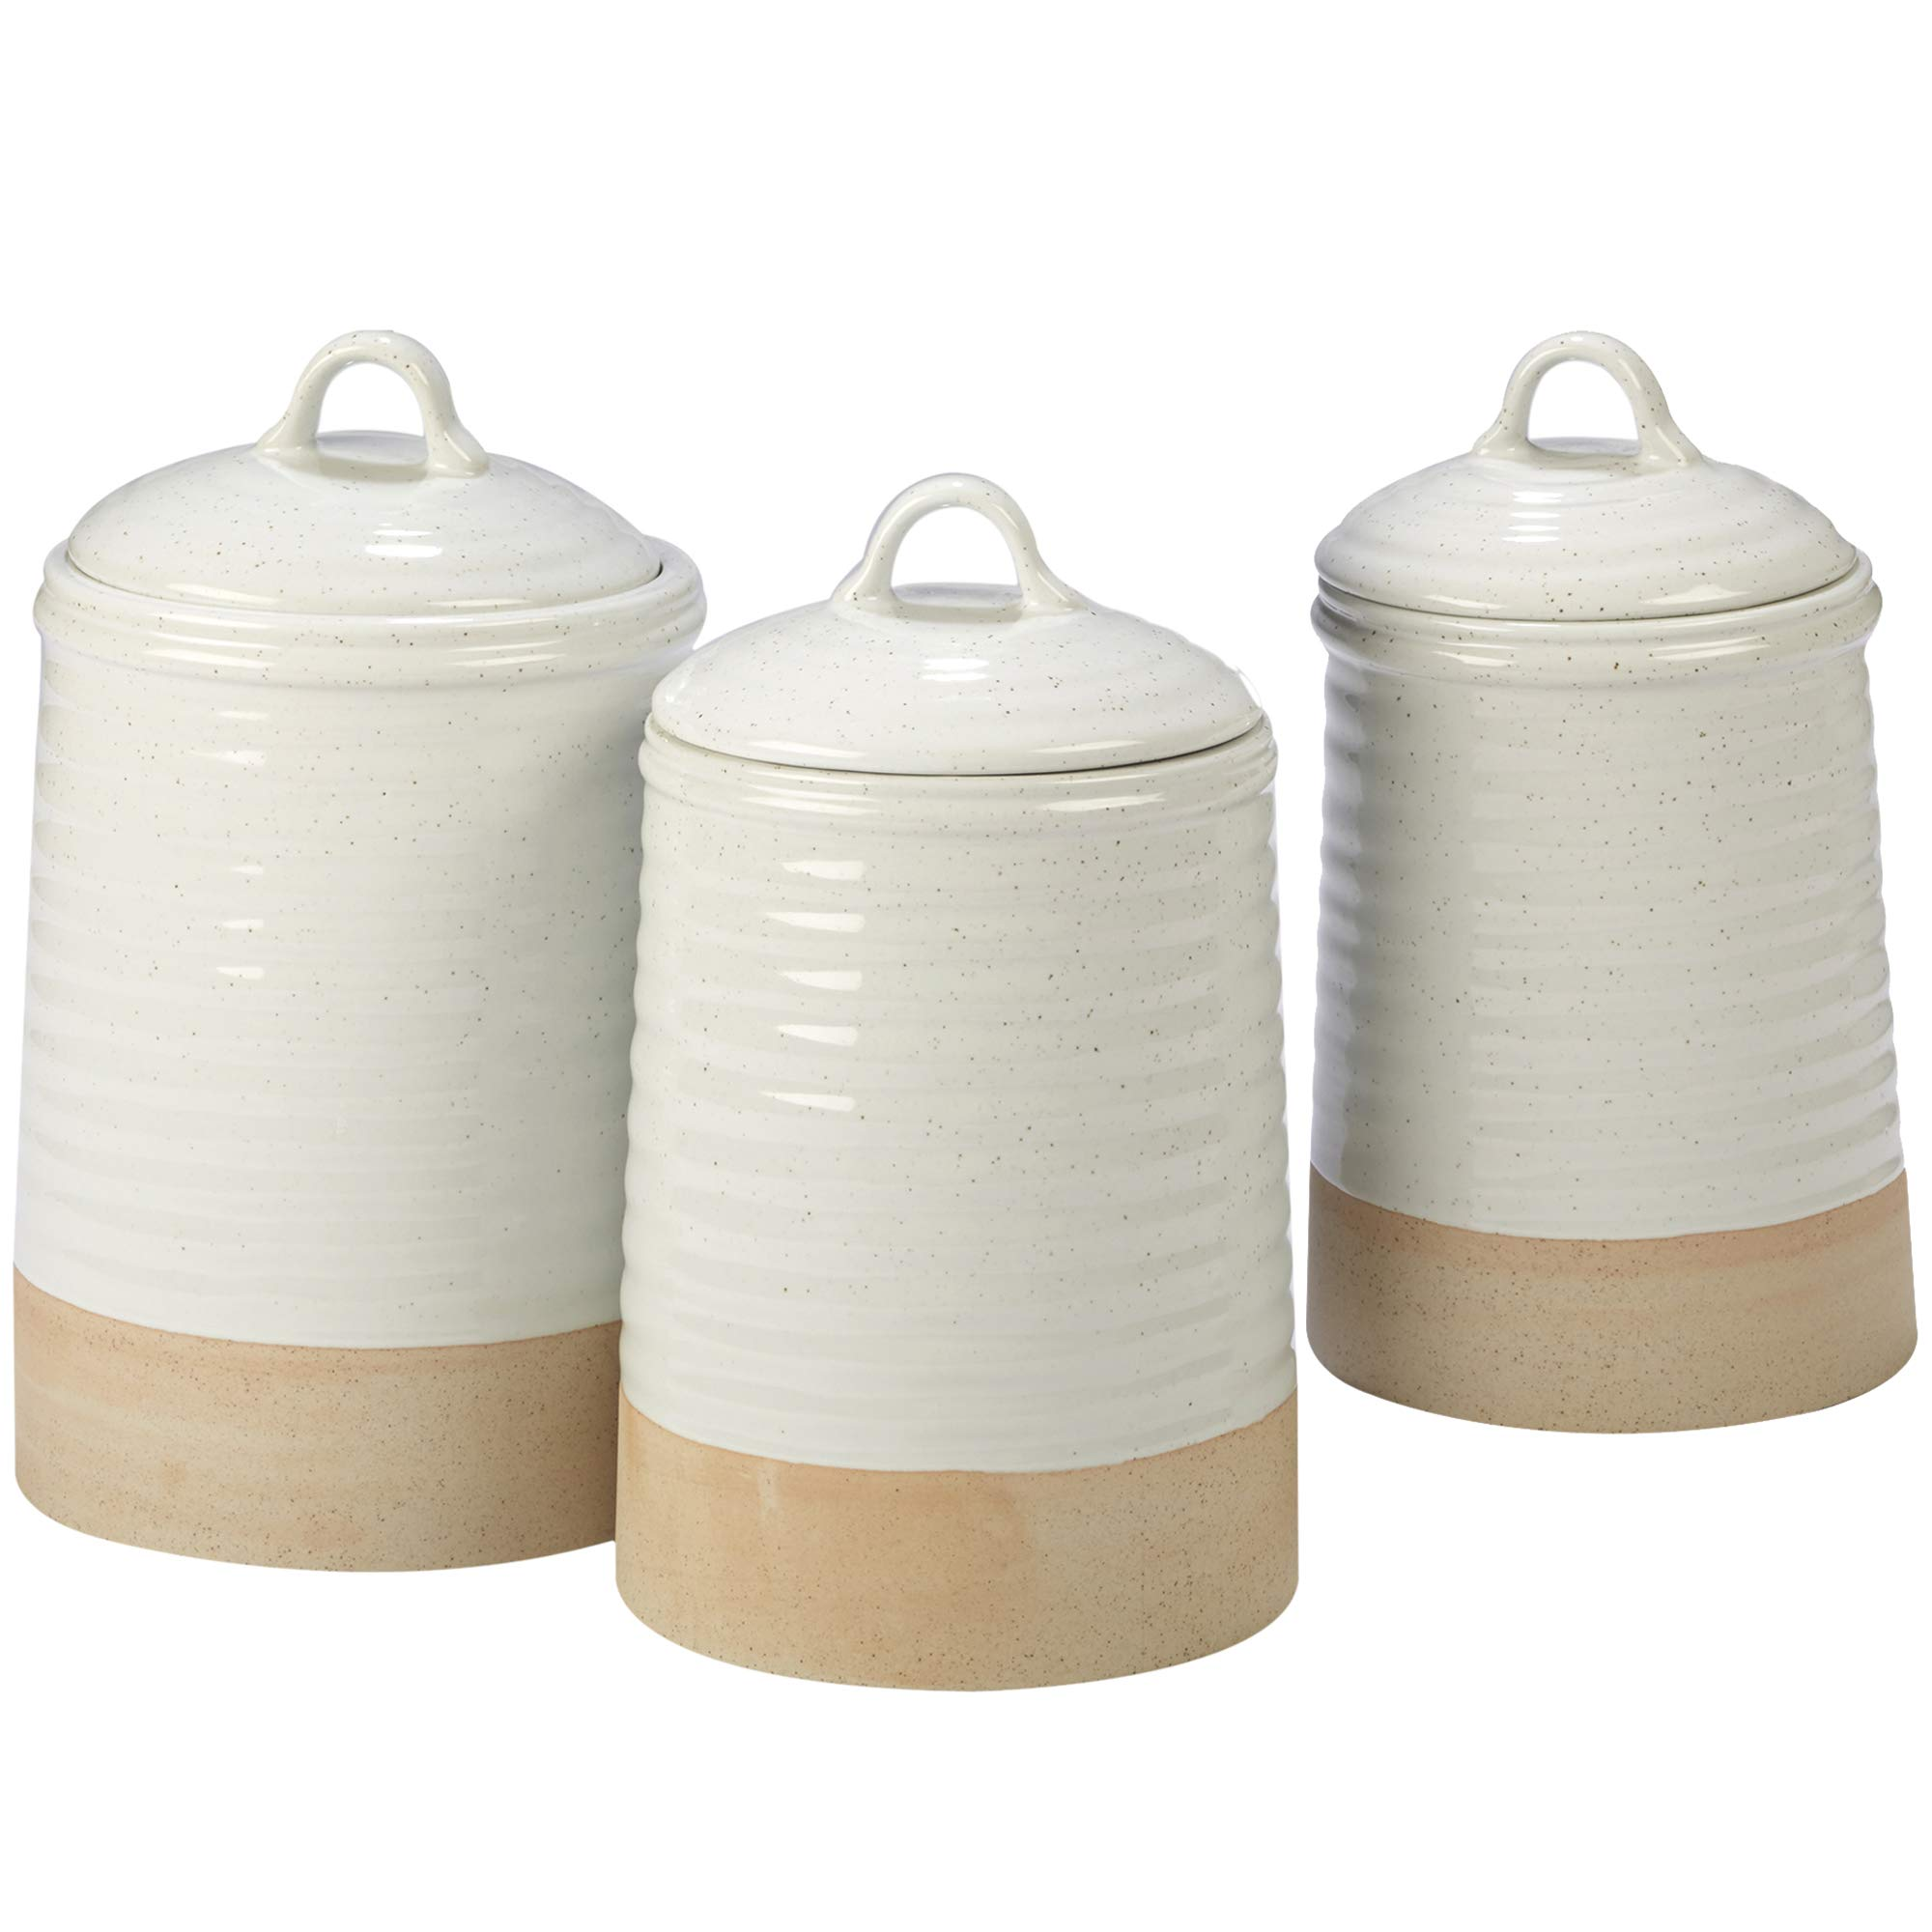 Certified International 23788 Artisan 3 pc Canister Set Servware, Serving Accessories, One Size, Multicolored